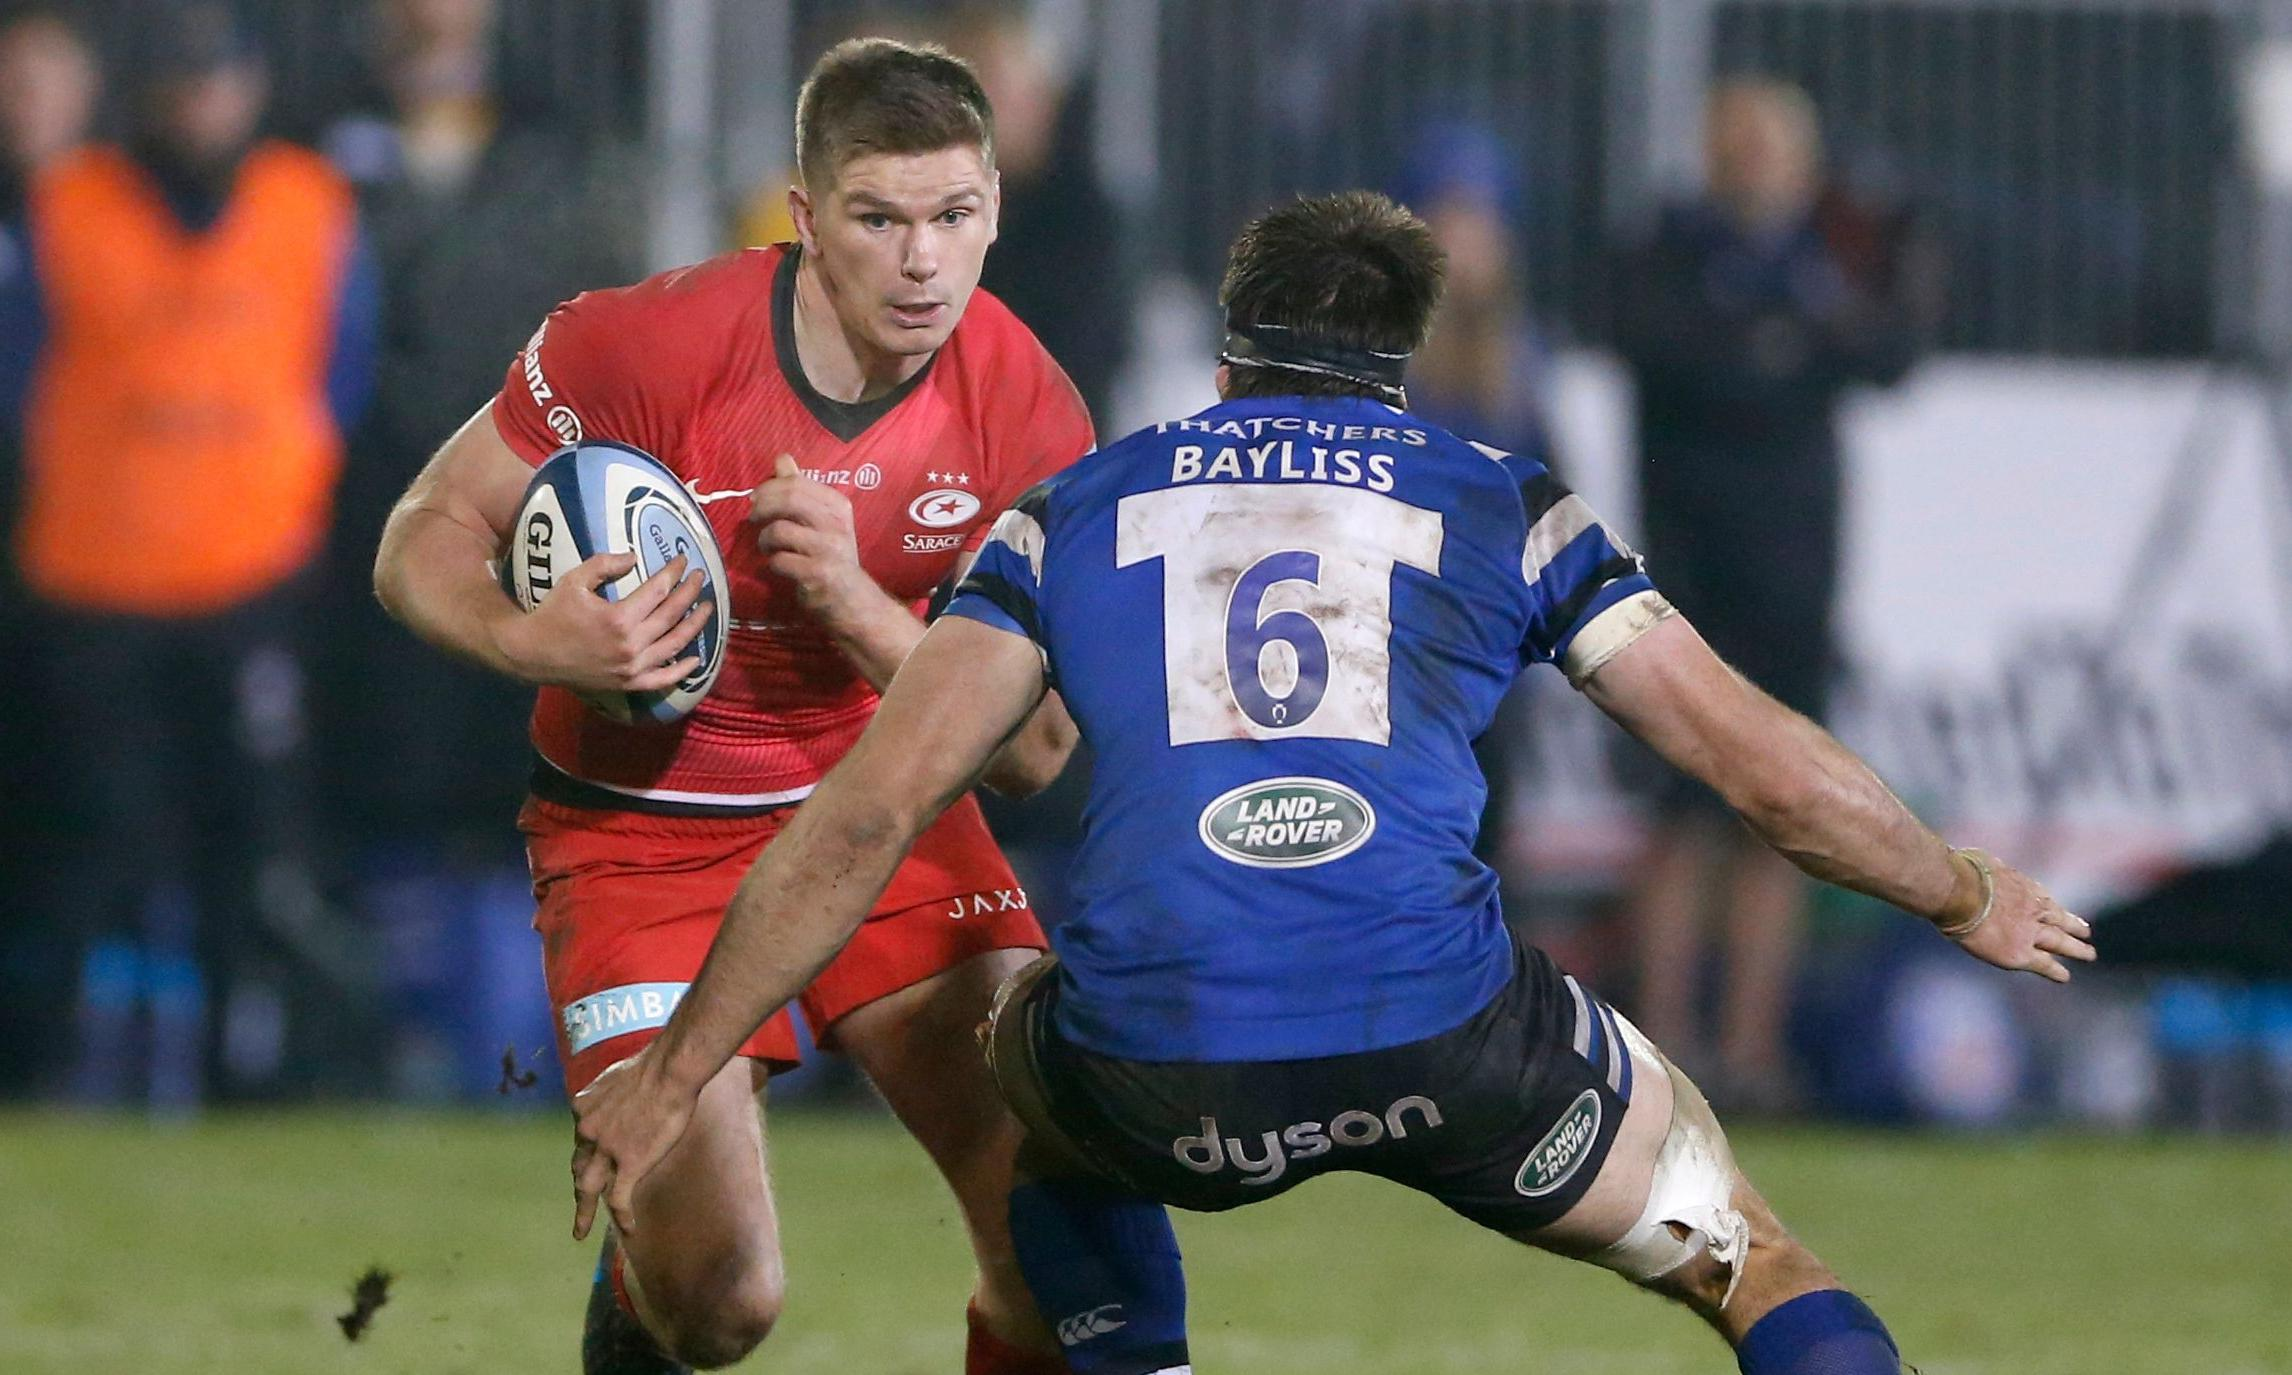 Champions Cup preview: Saracens recall internationals for crucial match